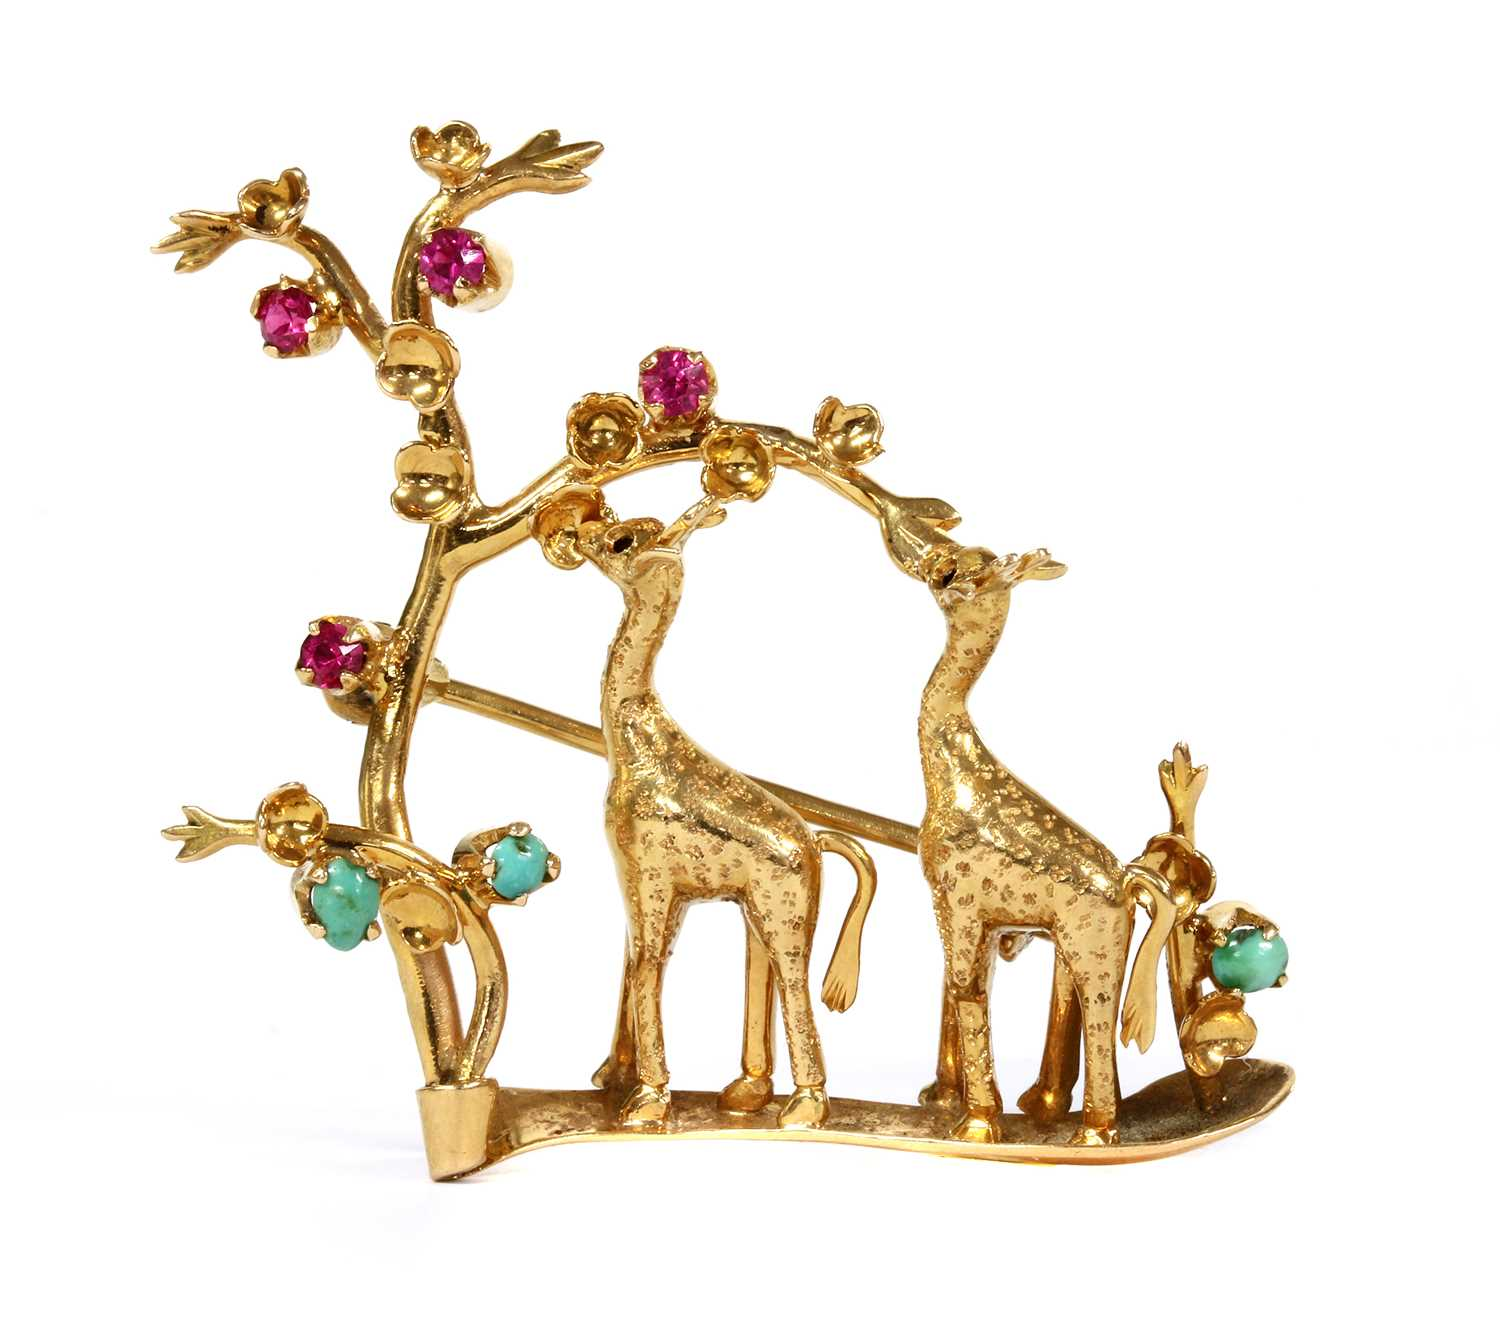 Lot 14 - An Italian gold ruby and turquoise set giraffe brooch, c.1950